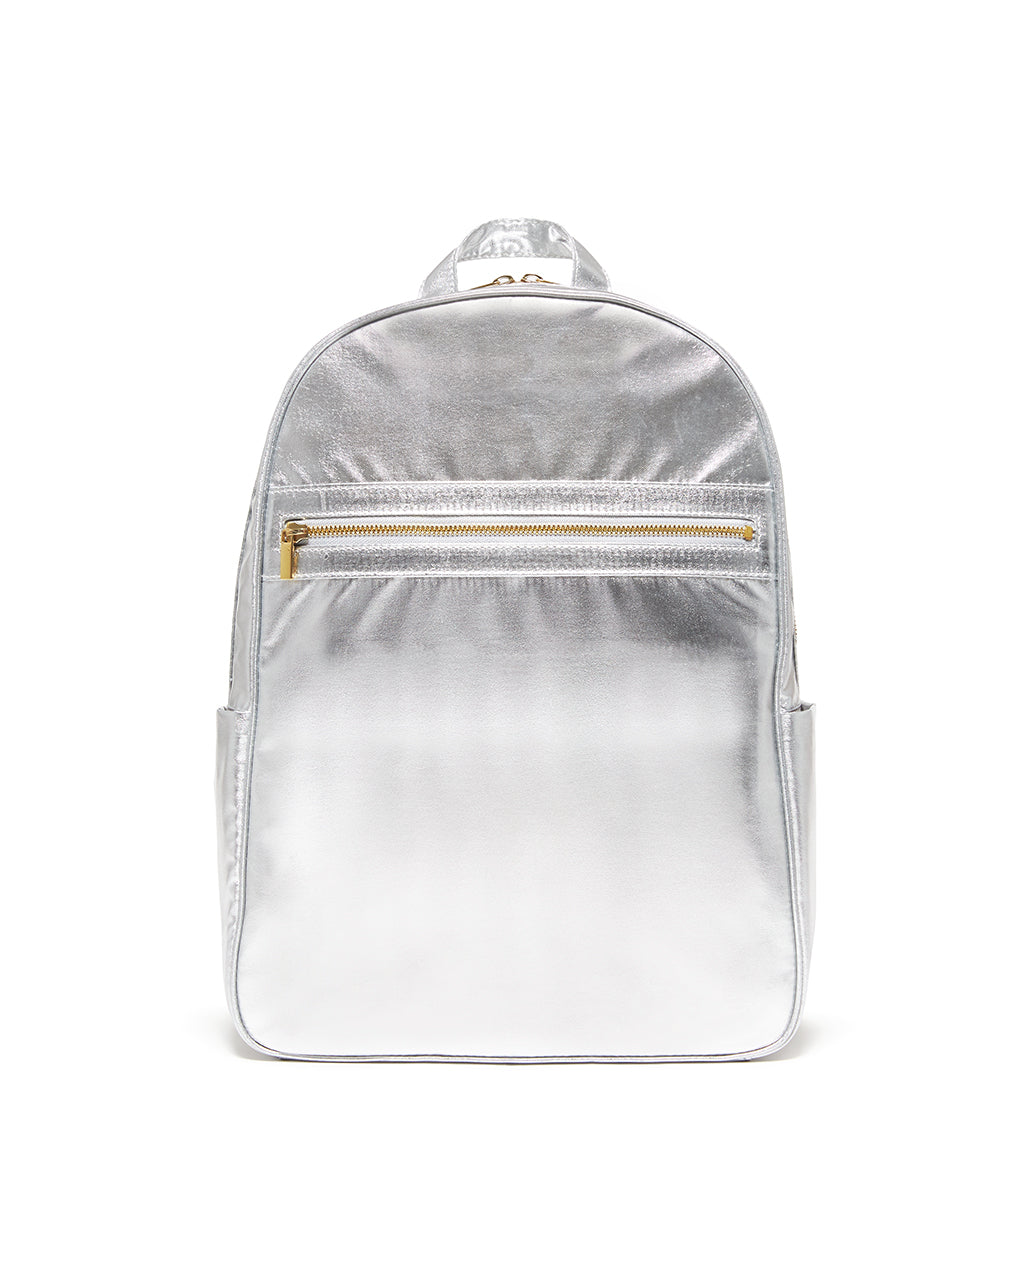 This Get It Together Backpack comes in a shiny metallic silver color.